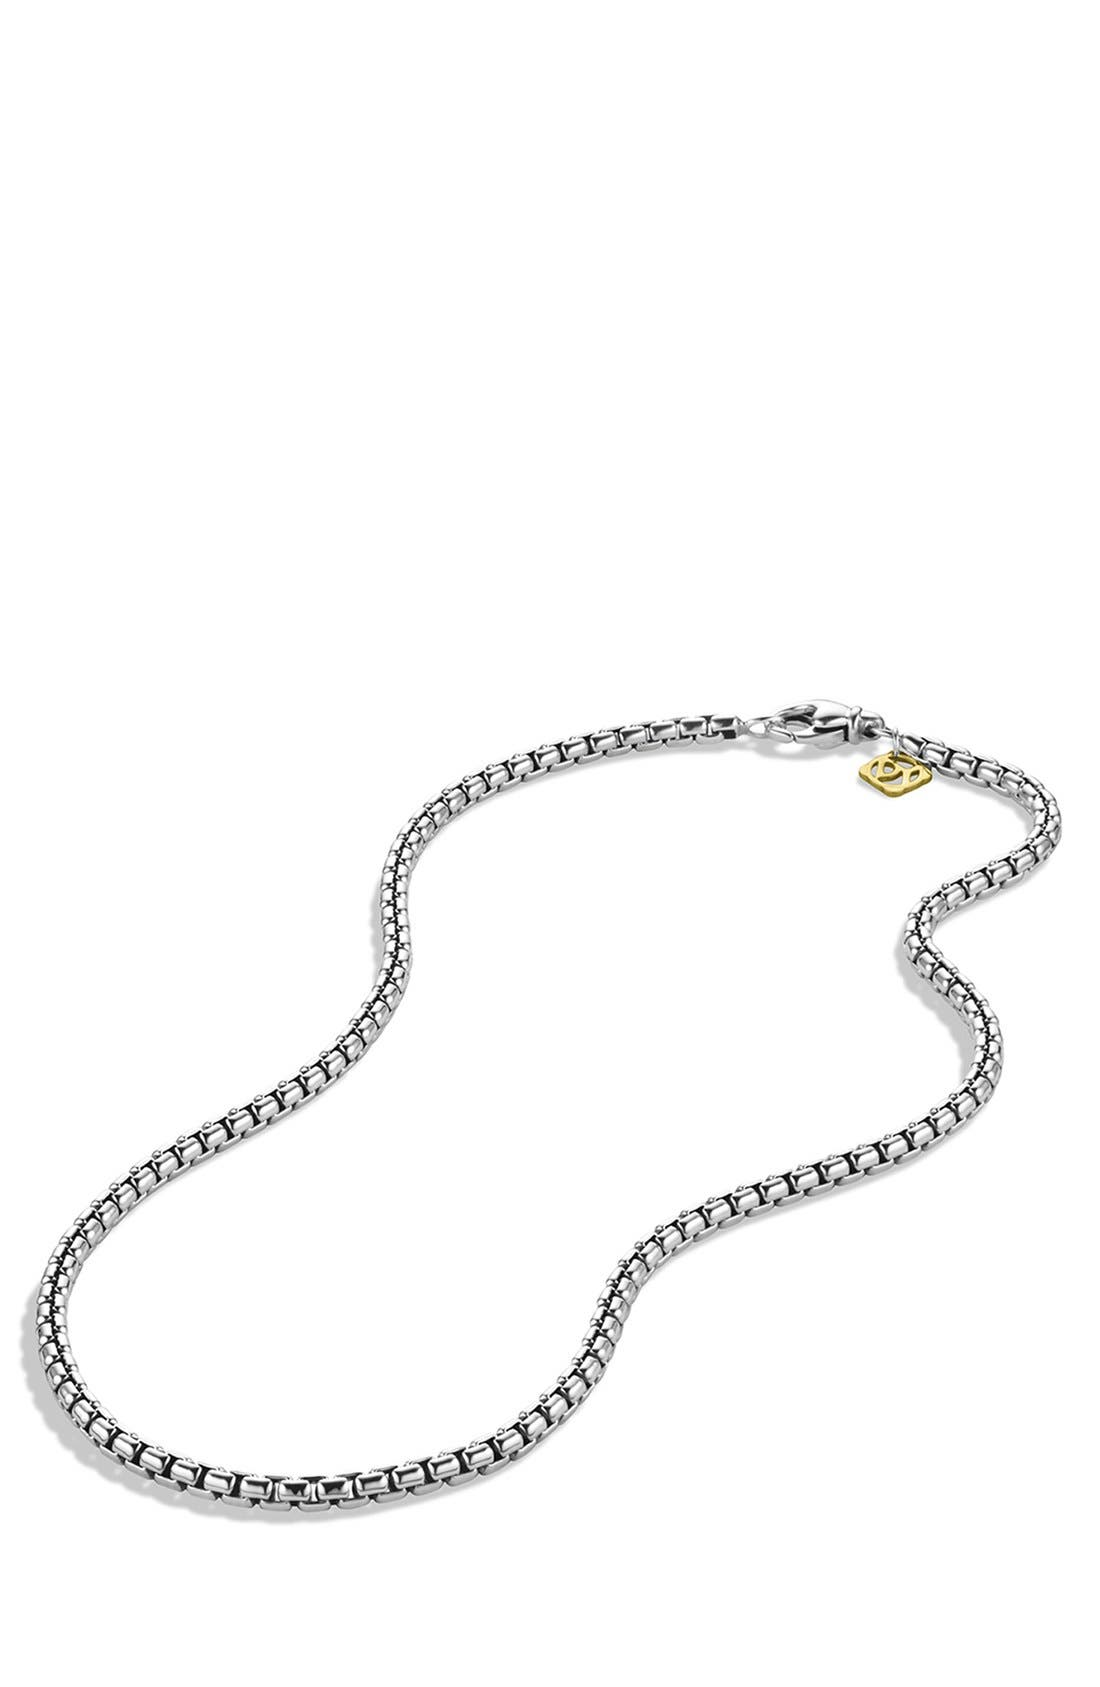 DAVID YURMAN,                             'Chain' Medium Box Chain with Gold,                             Alternate thumbnail 2, color,                             TWO TONE